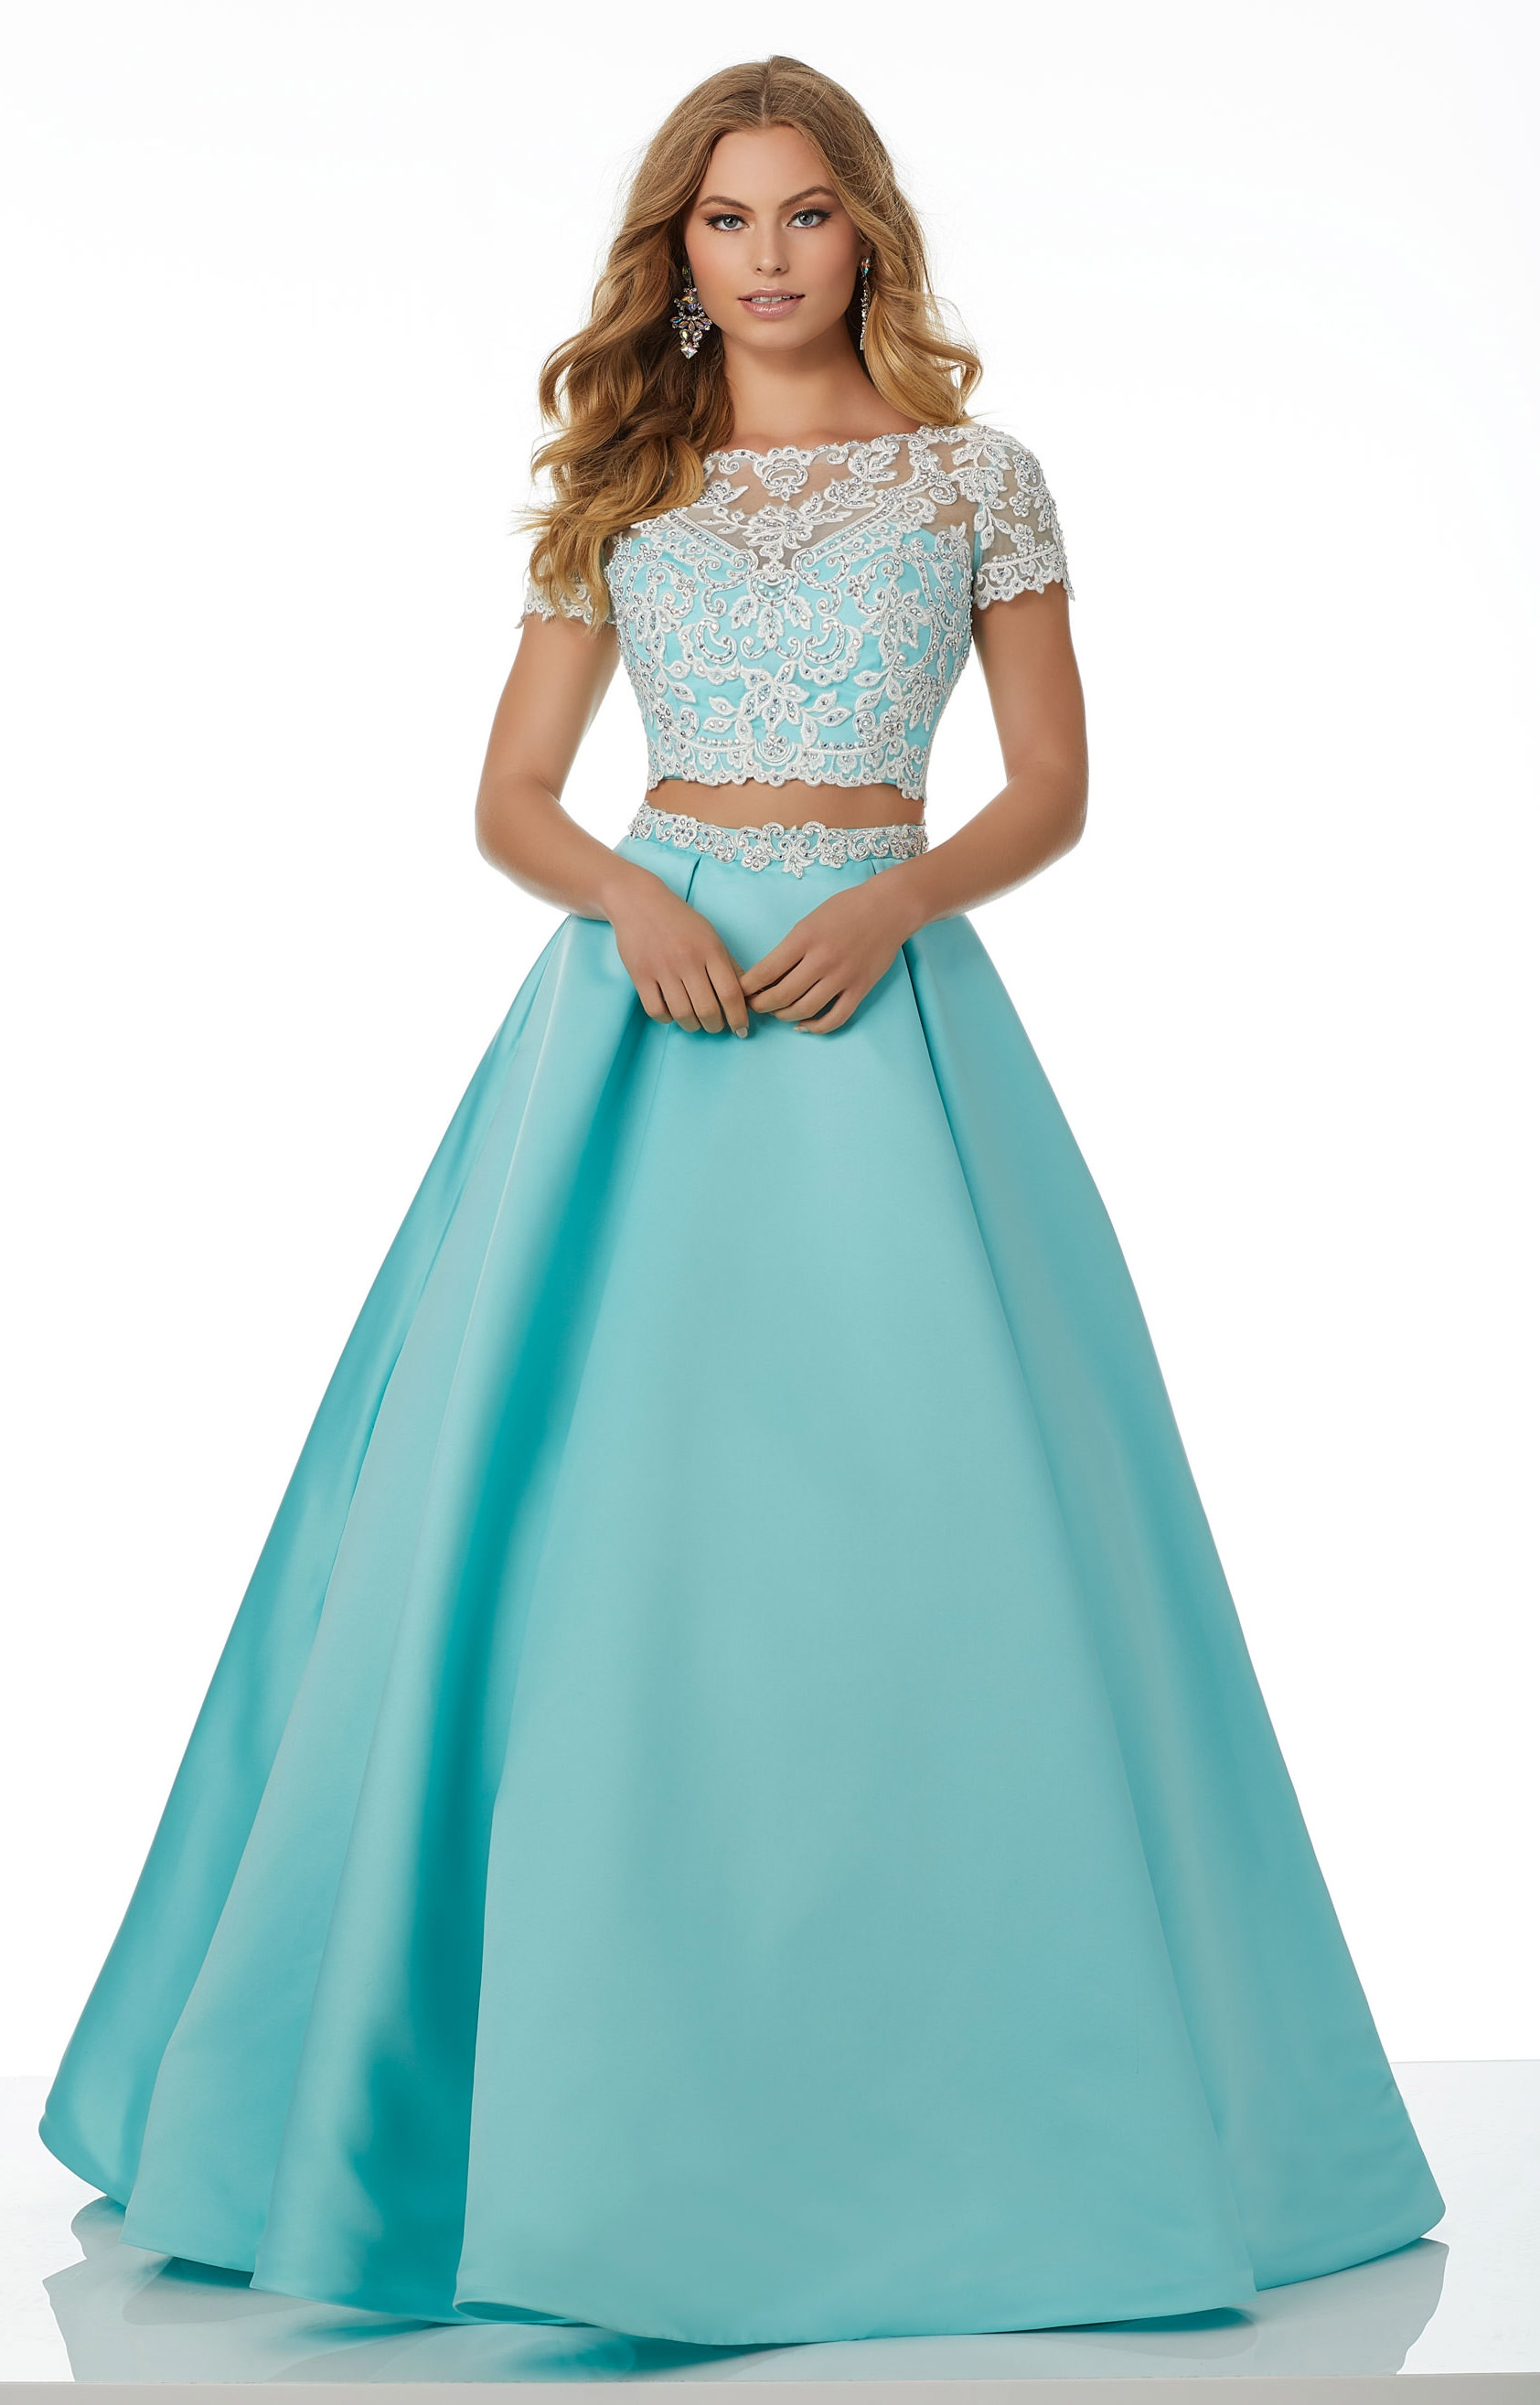 Mori Lee Prom 42086 - 2 Piece Satin Ball Gown Prom Dress